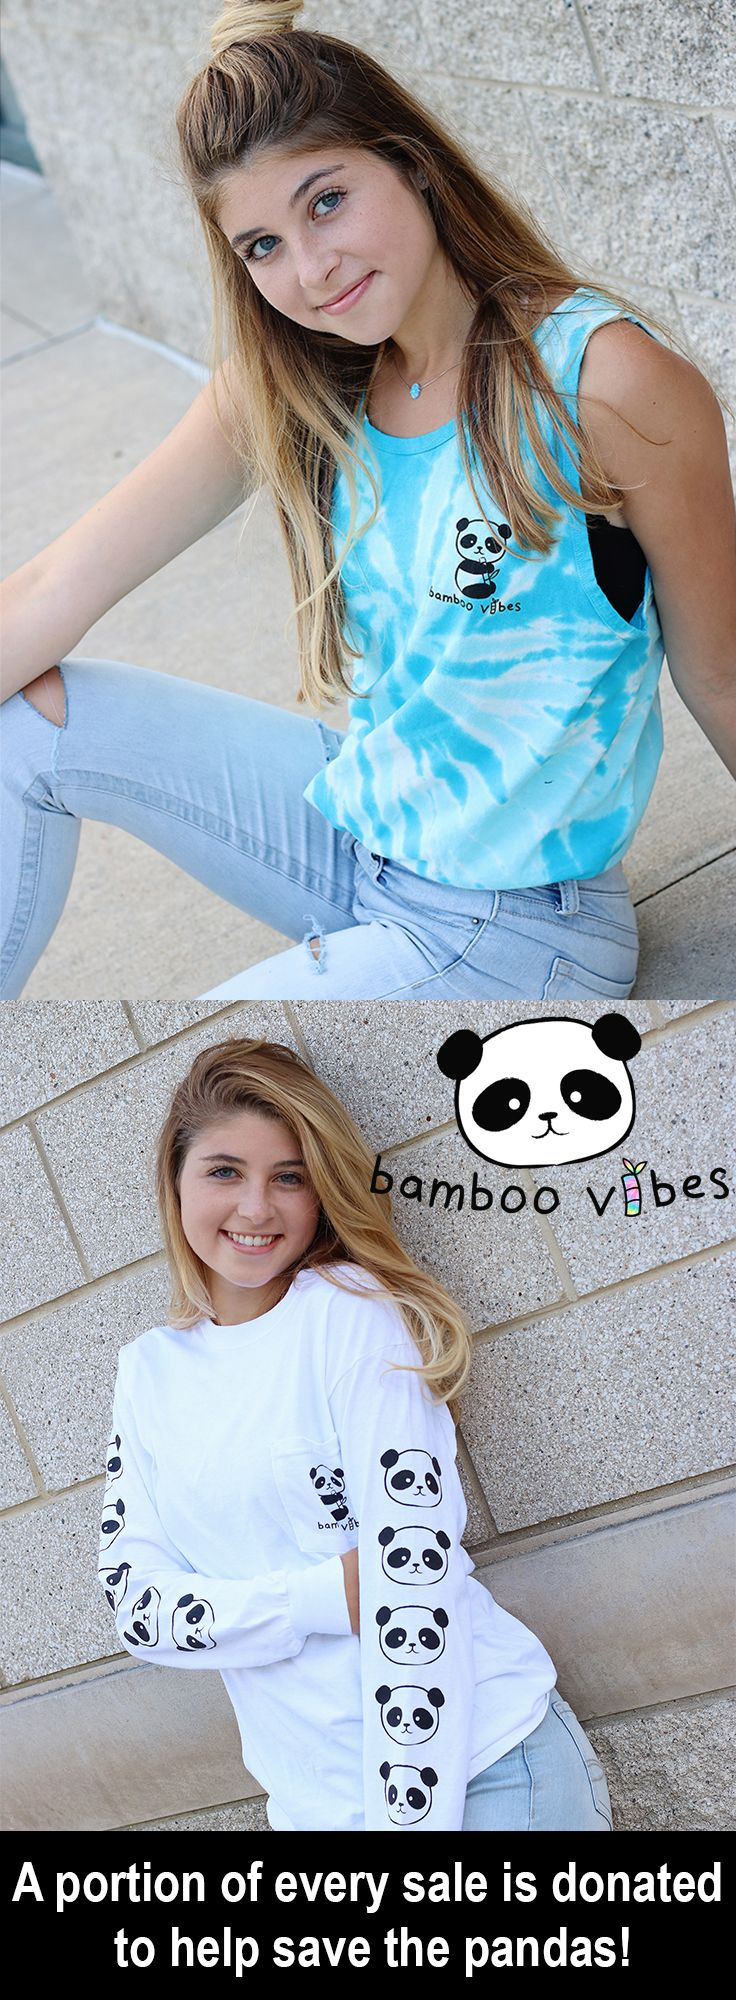 A portion of every sale is donated to help save the pandas! @bamboovibes